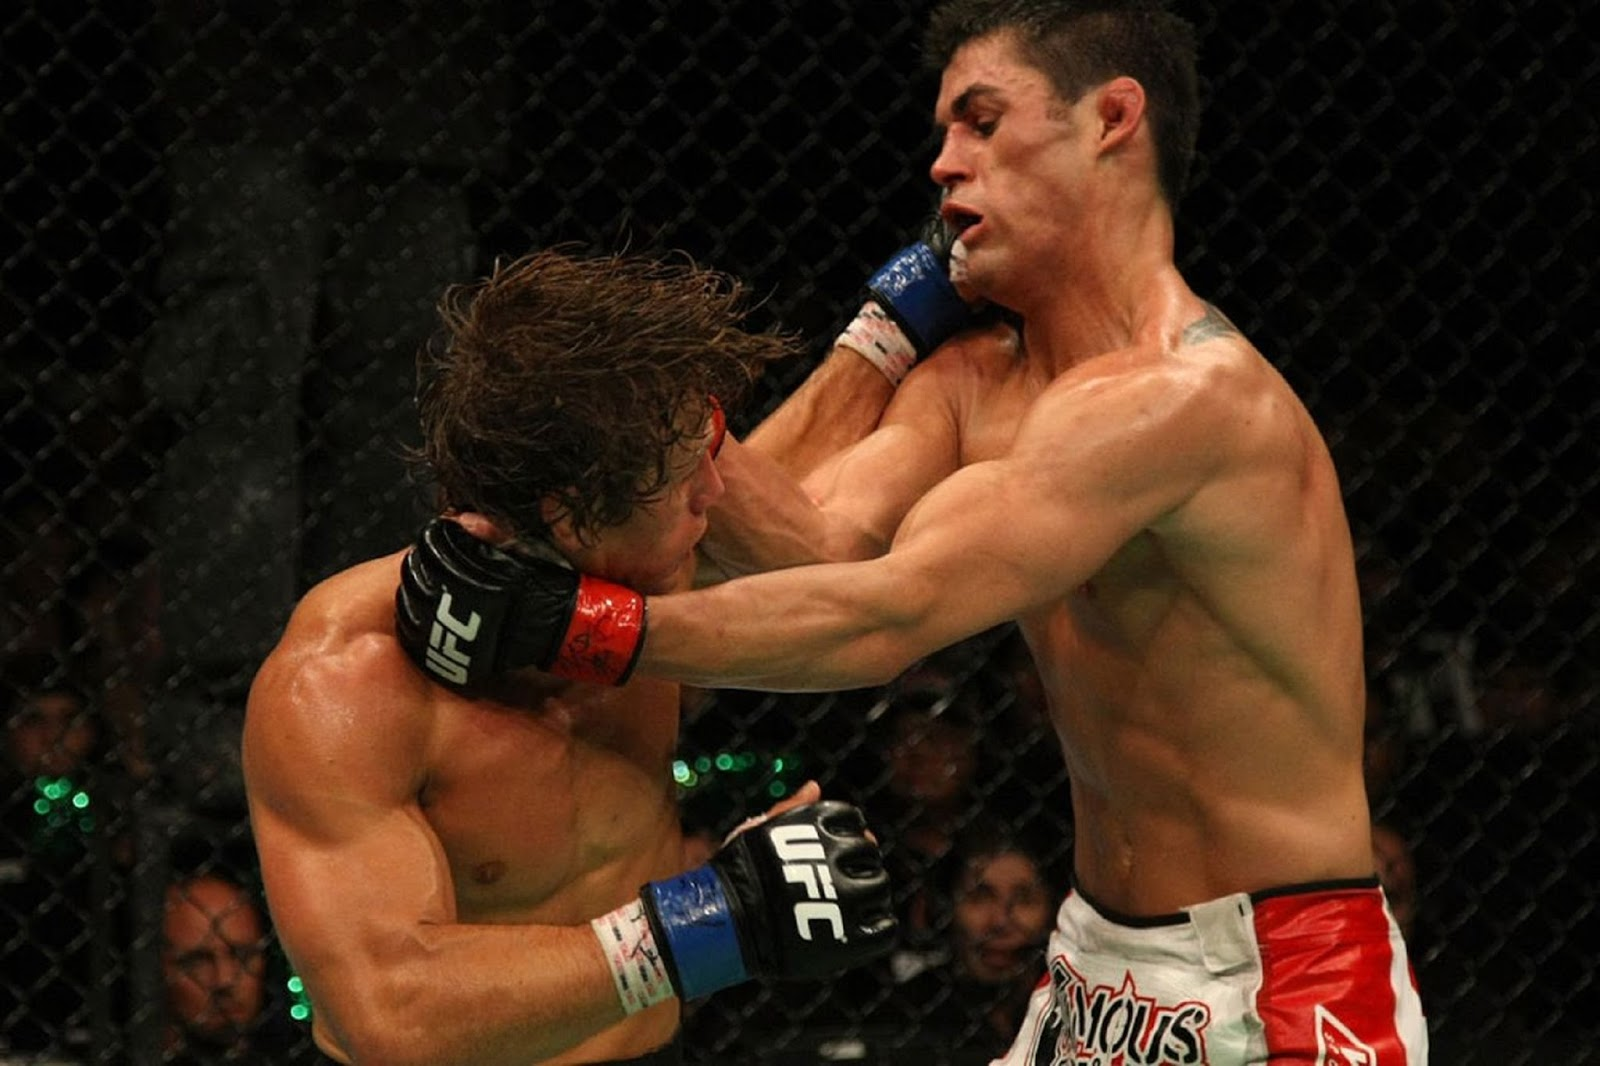 DOMINICK CRUZ VS. URIJAH FABER 5